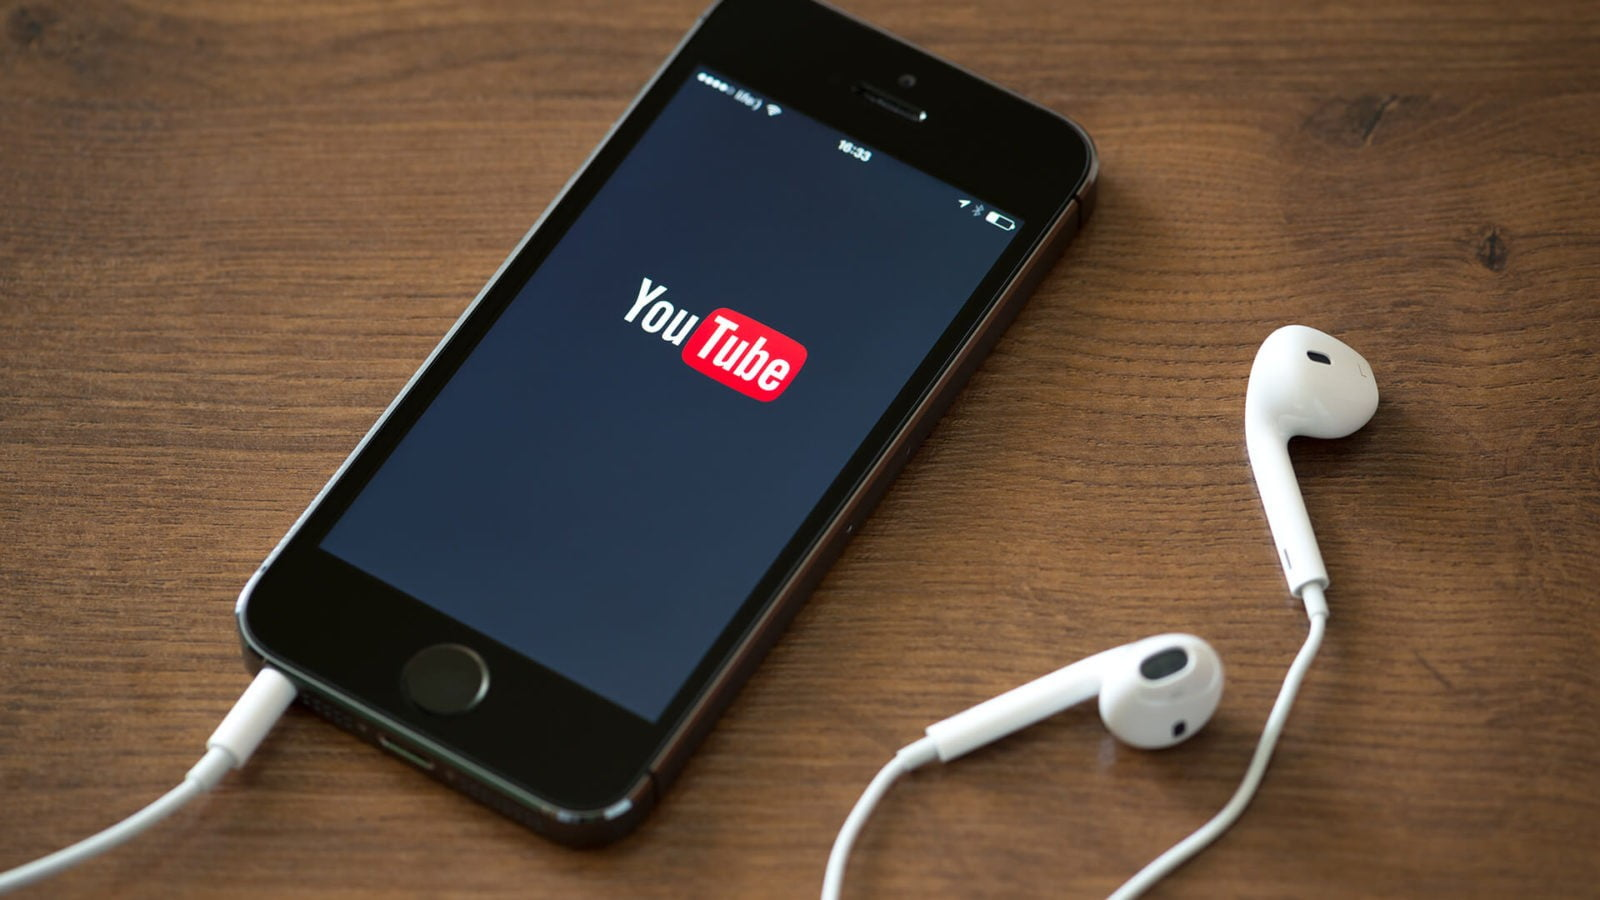 youtube mobile iphone1 ss 1920